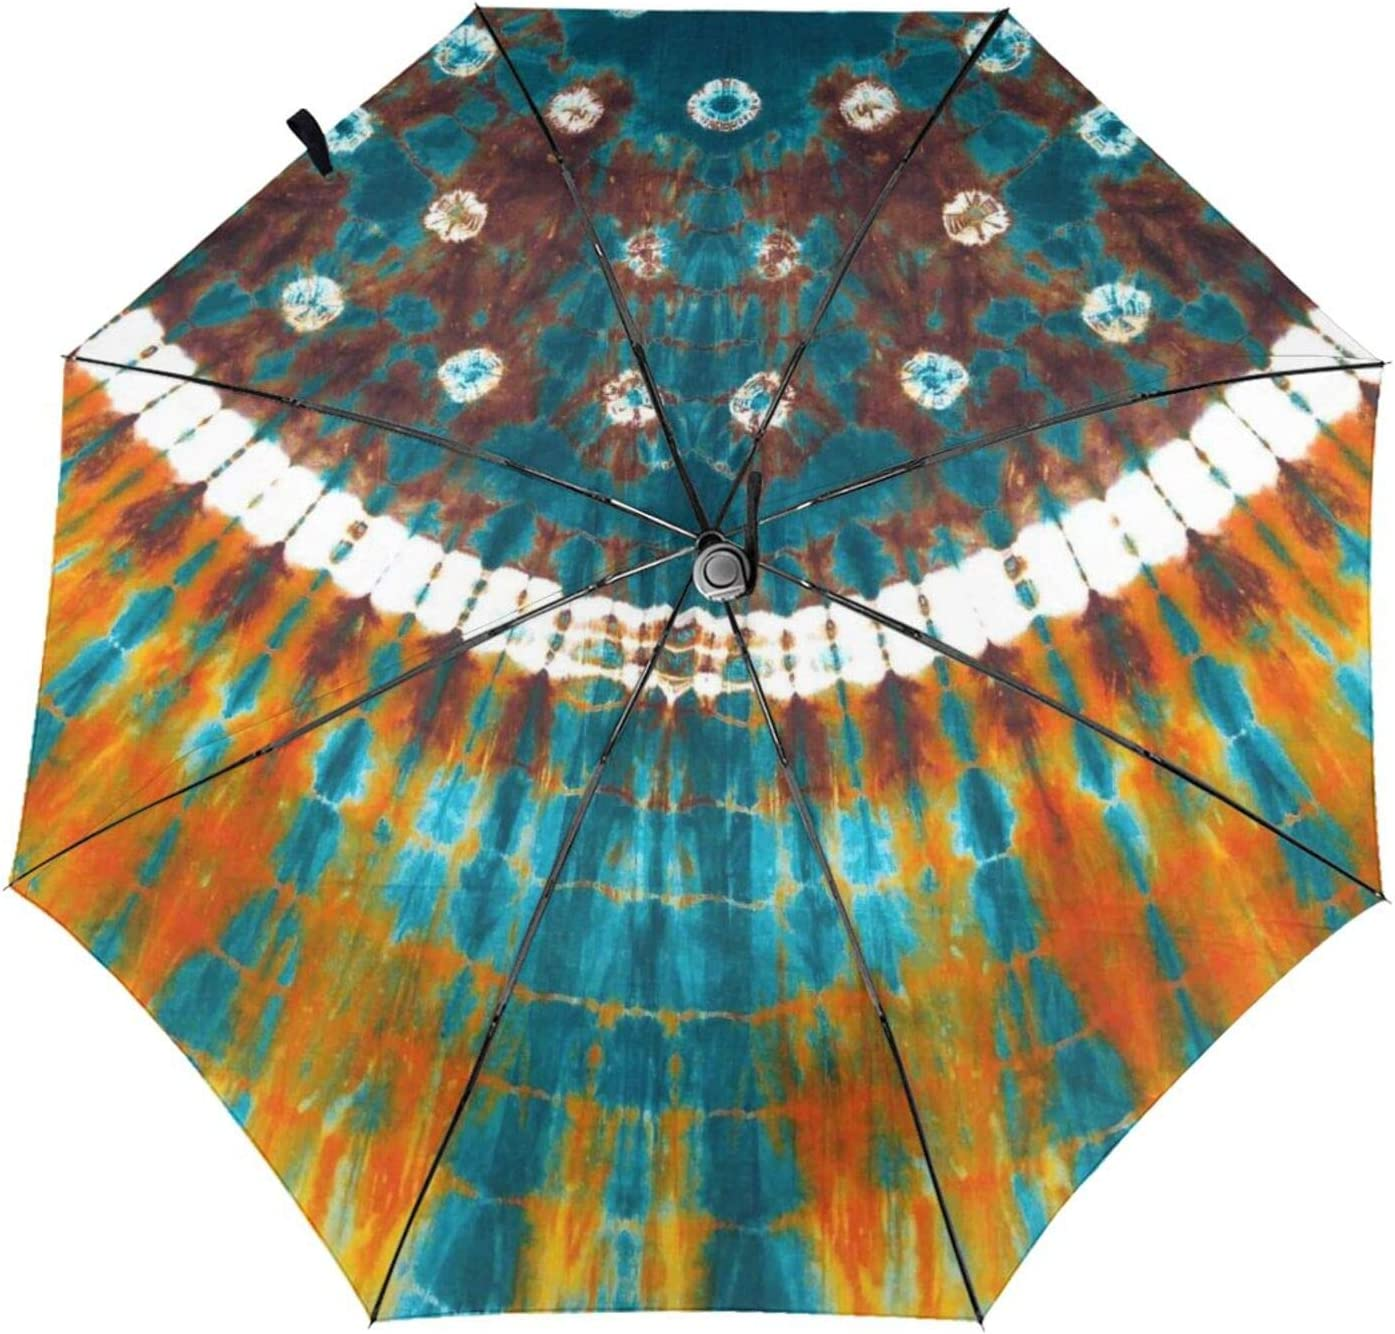 zsst Automatic Folding Umbrellas Inside Print Dye Spi Tie Indian New product!! Genuine Free Shipping